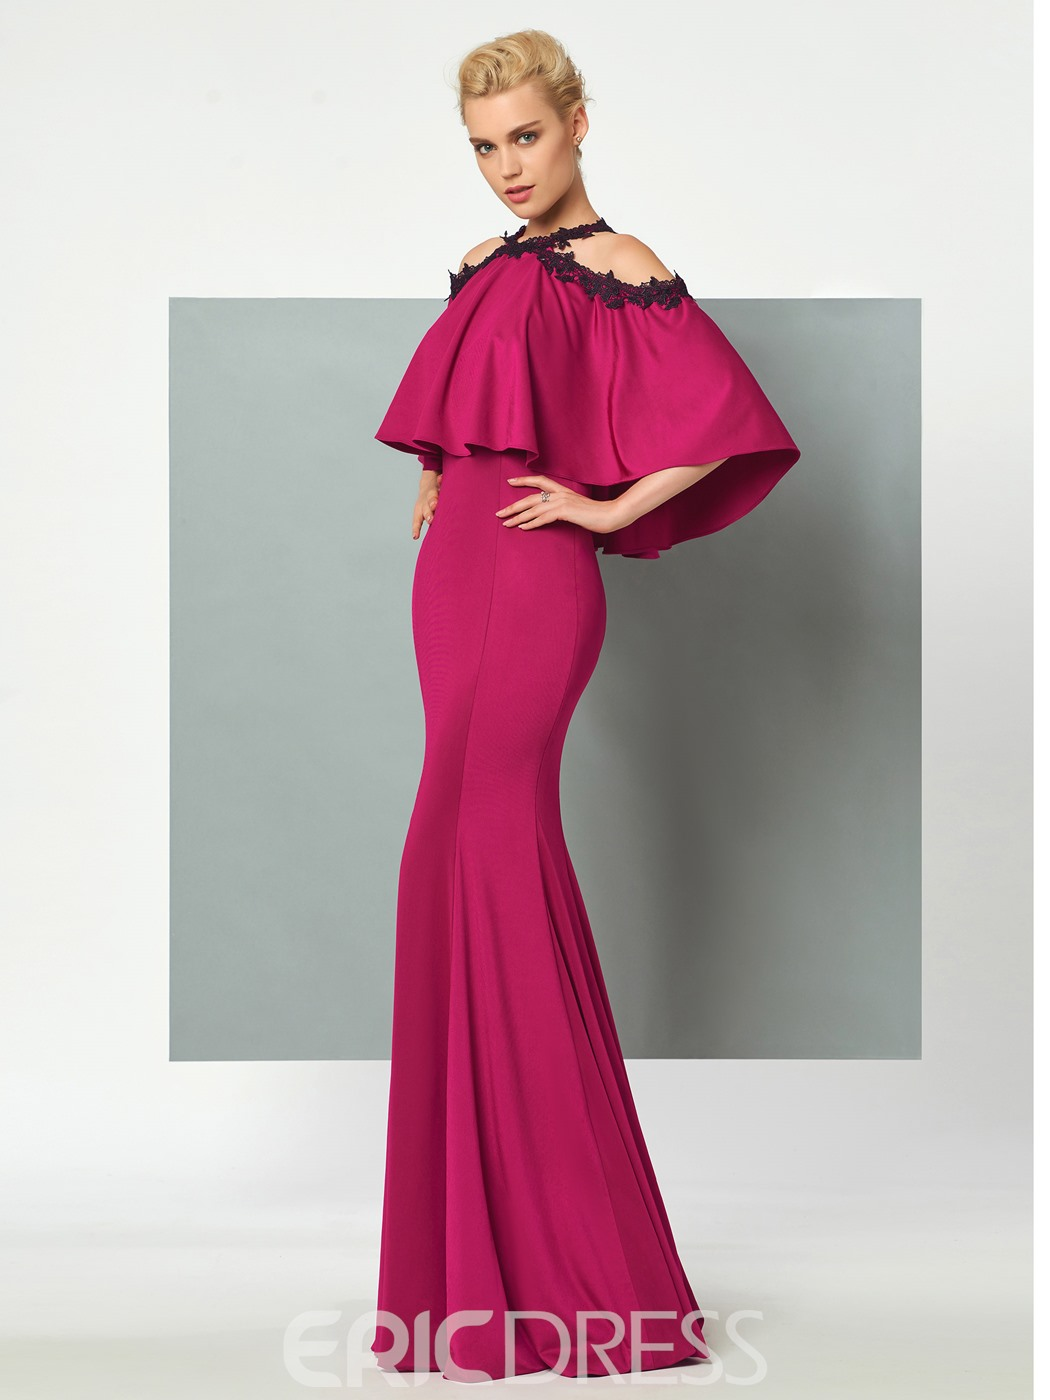 Ericdress Halter Cape Sleeve Mermaid Evening Dress In Floor Length